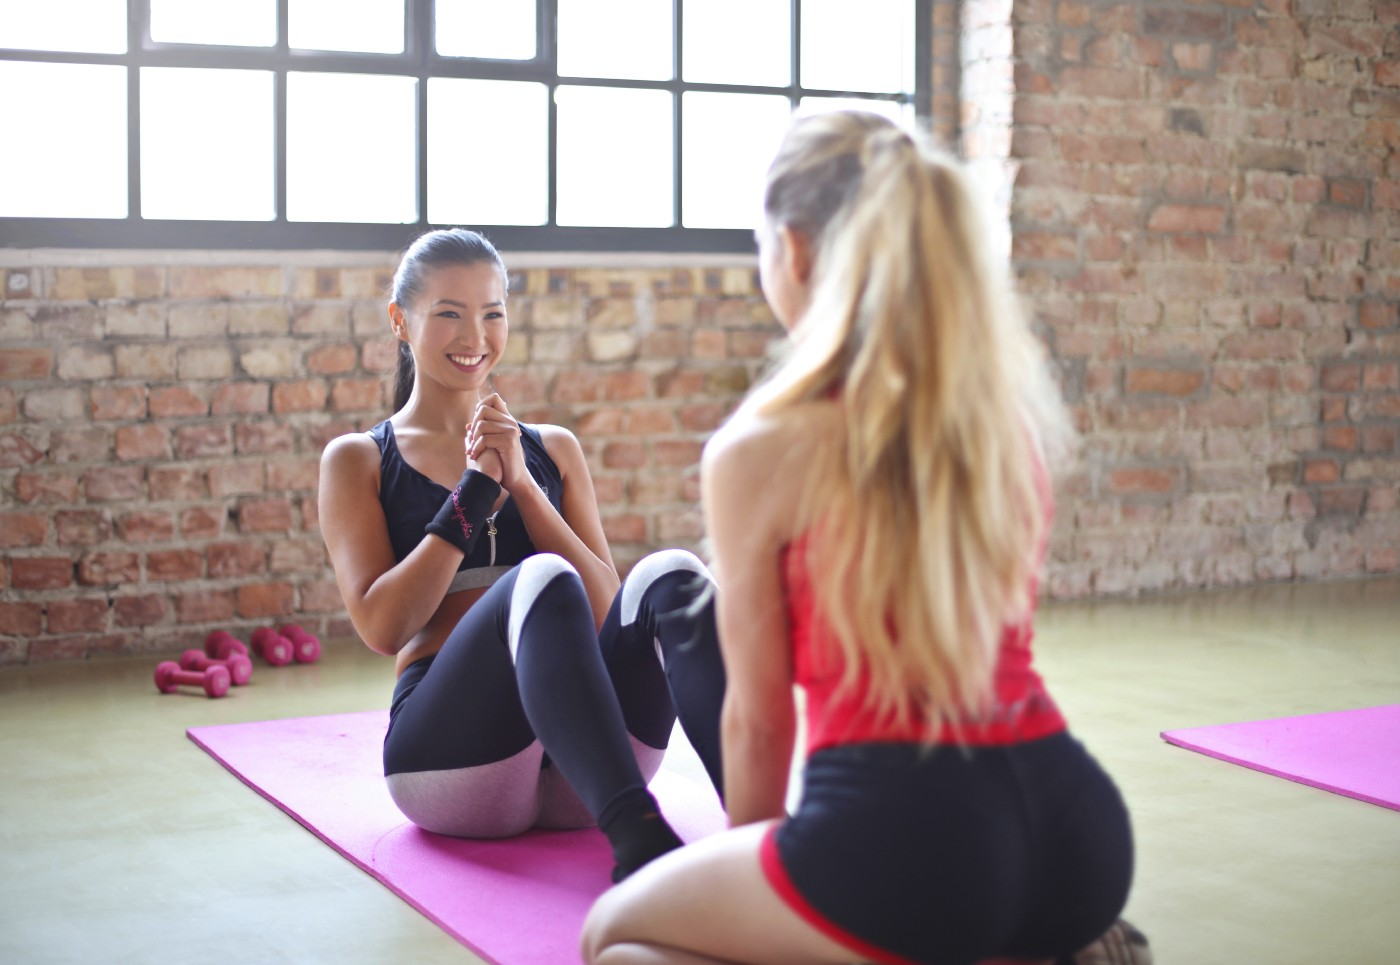 Two women working out with one person doing sit ups on a yoga mat